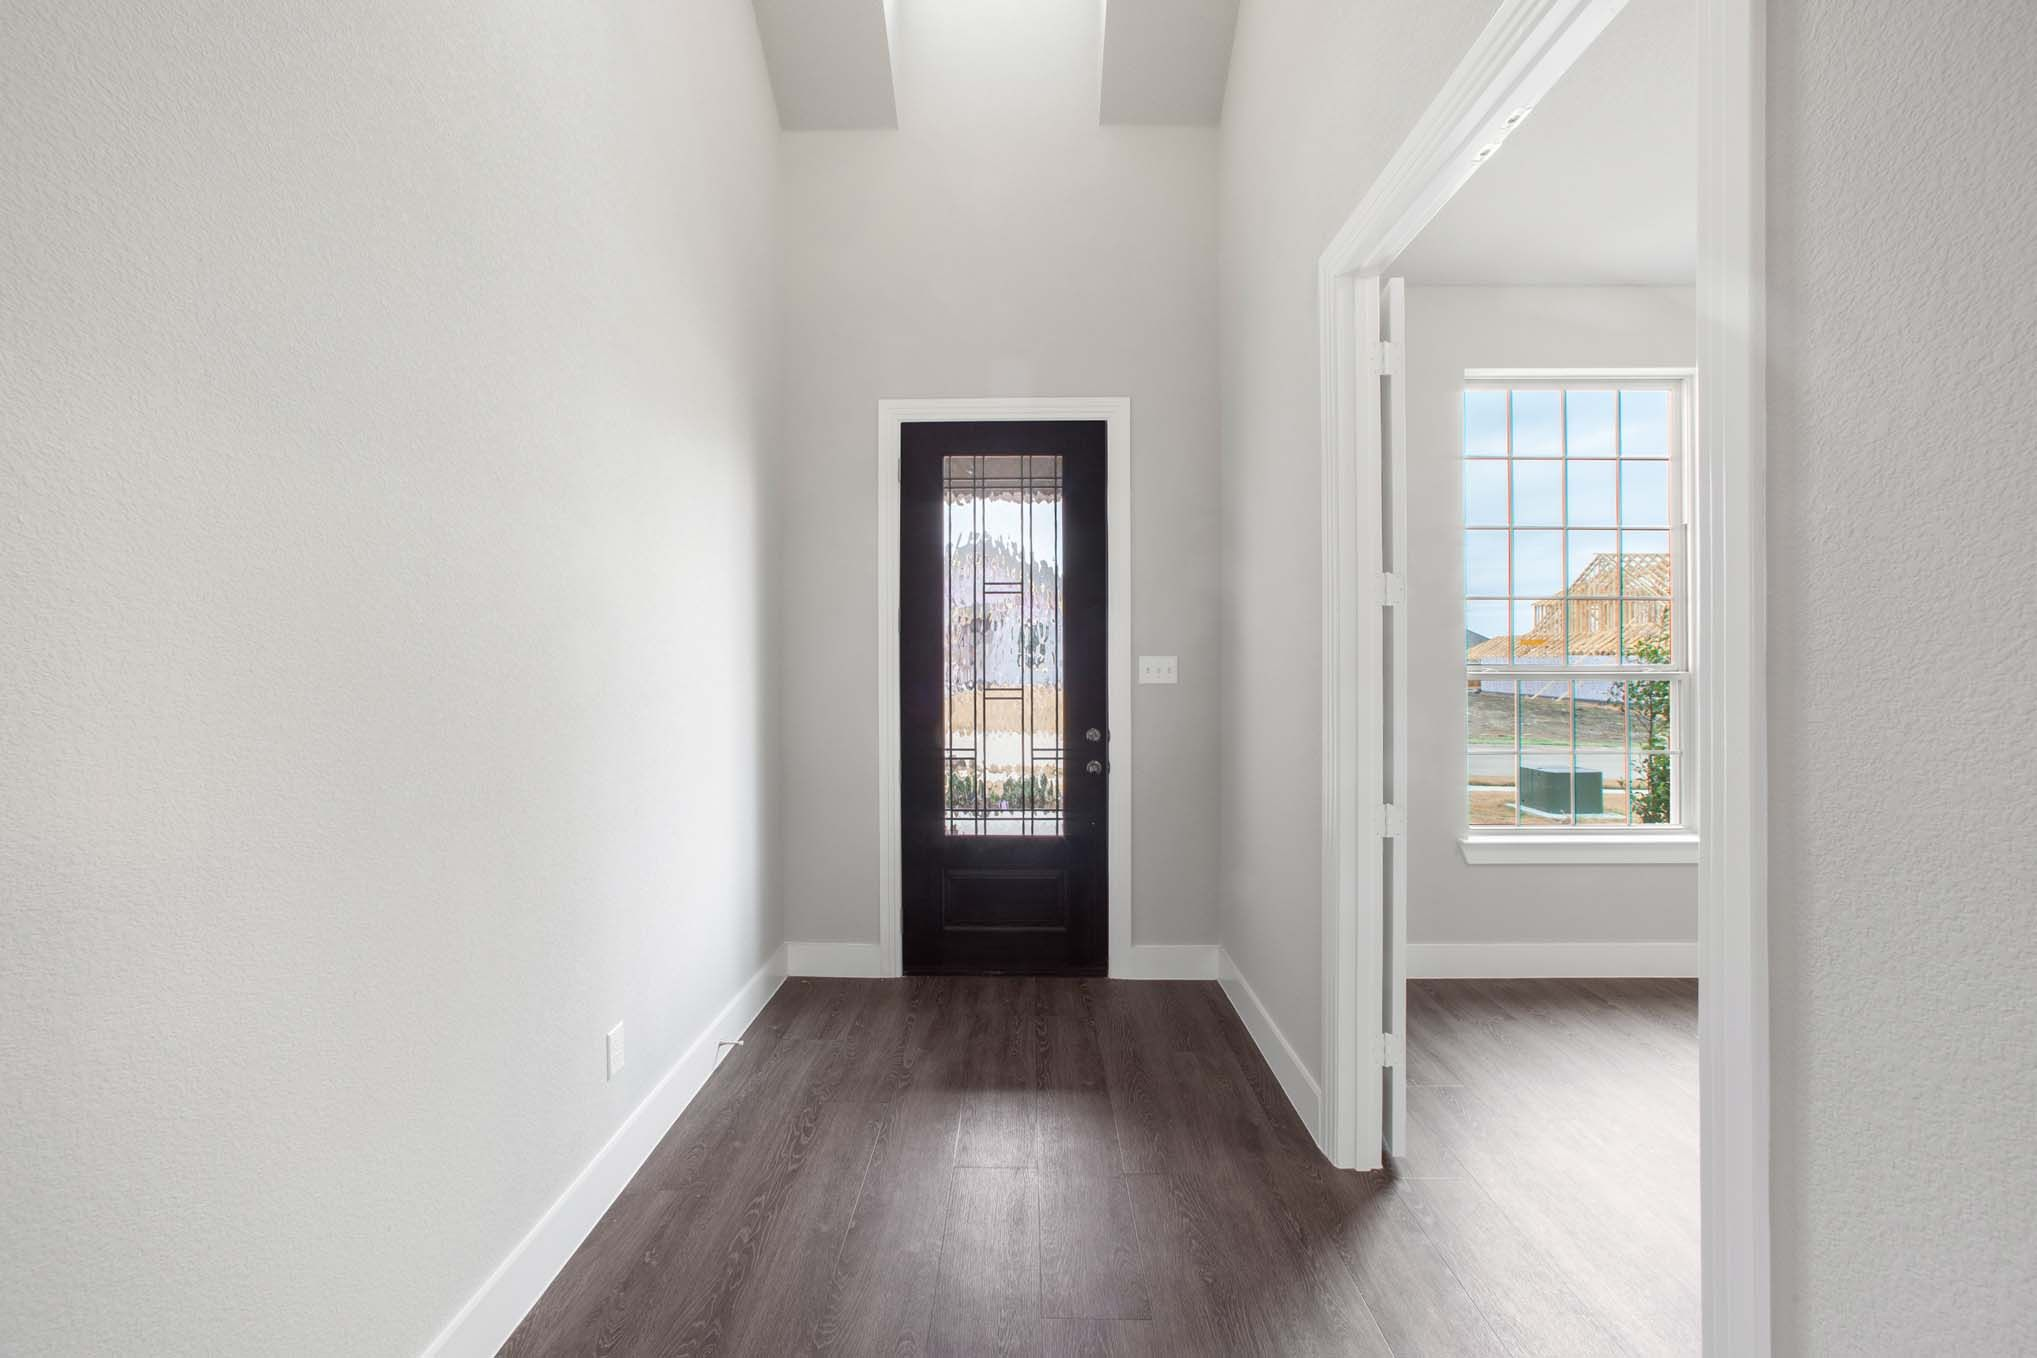 Pin by Highland Homes at North Grove on Front Doors in